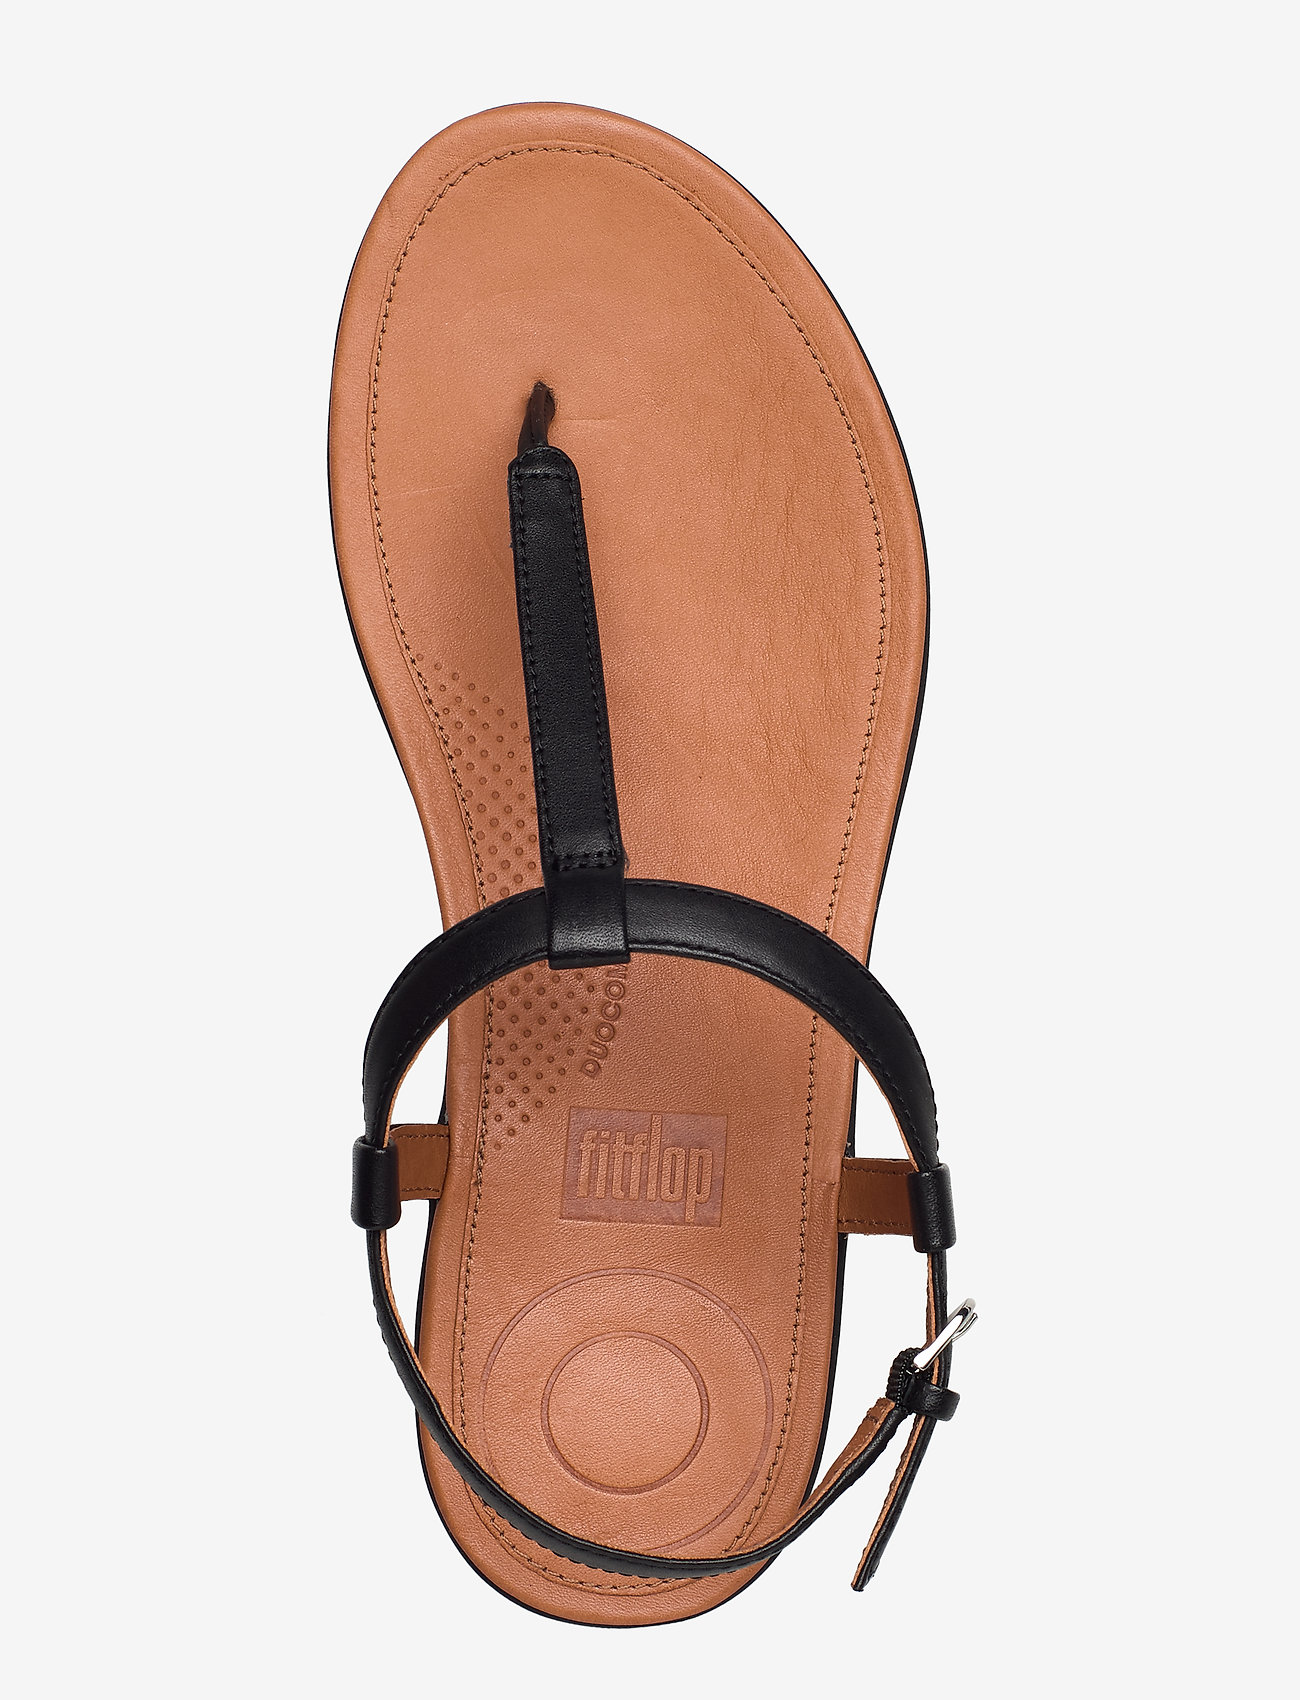 Fitflop Tia Toe-thong Sandals - Leather Sandaler Black